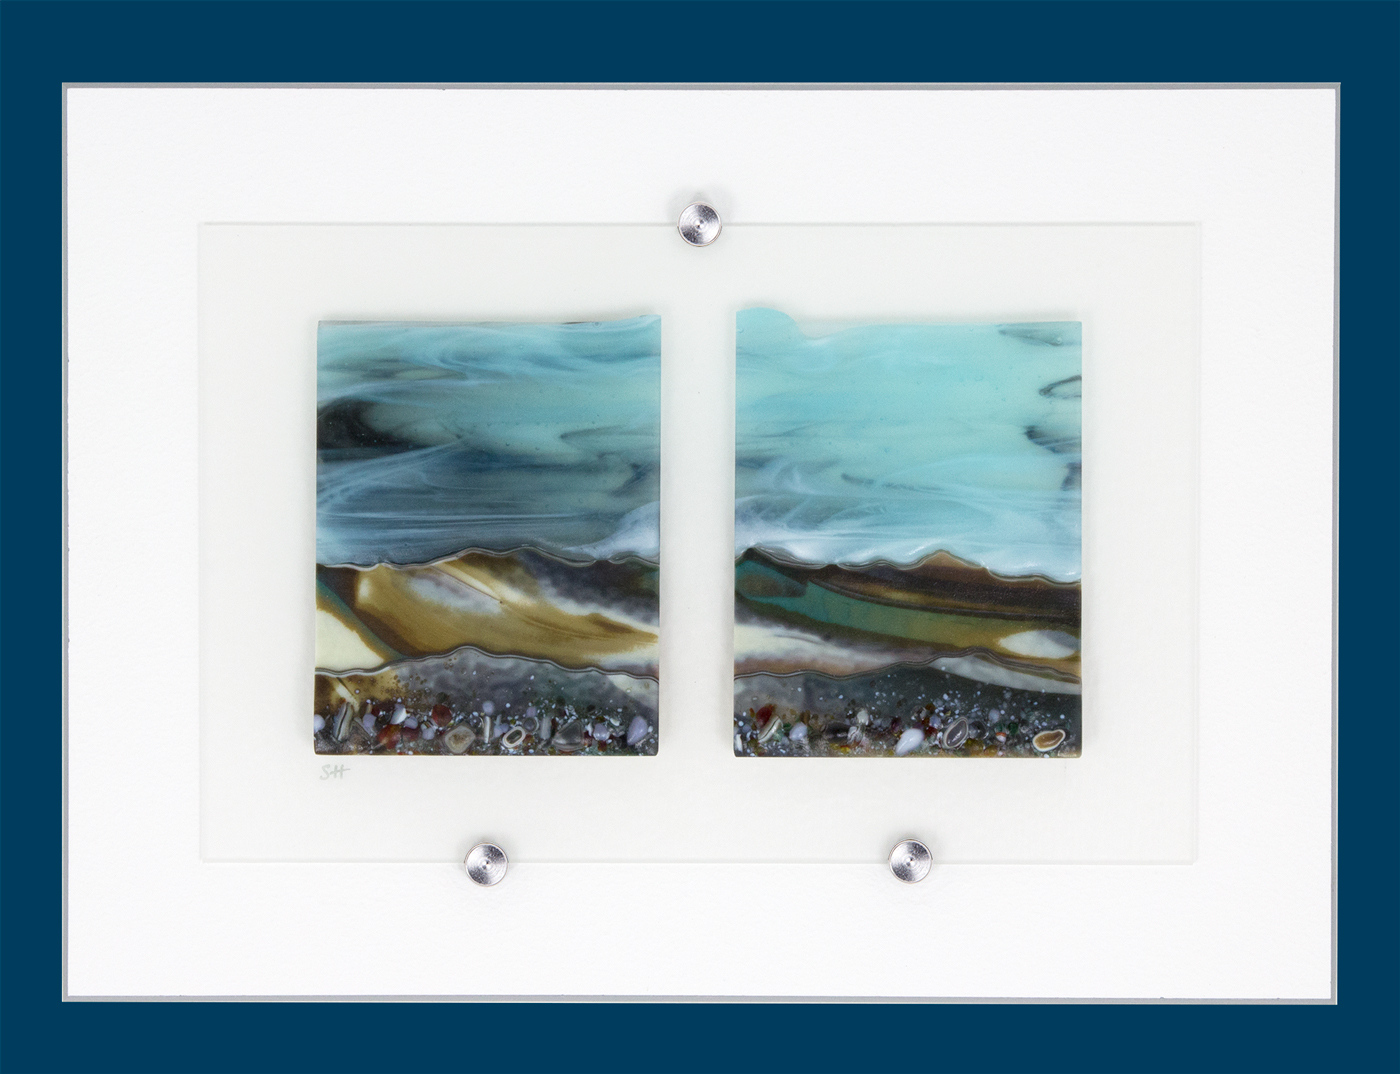 Glass Wall Art, landscape diptych with calm pale blue sky, landscape teal/browns/vanilla headland with a mix of coloured glass frits in foreground.